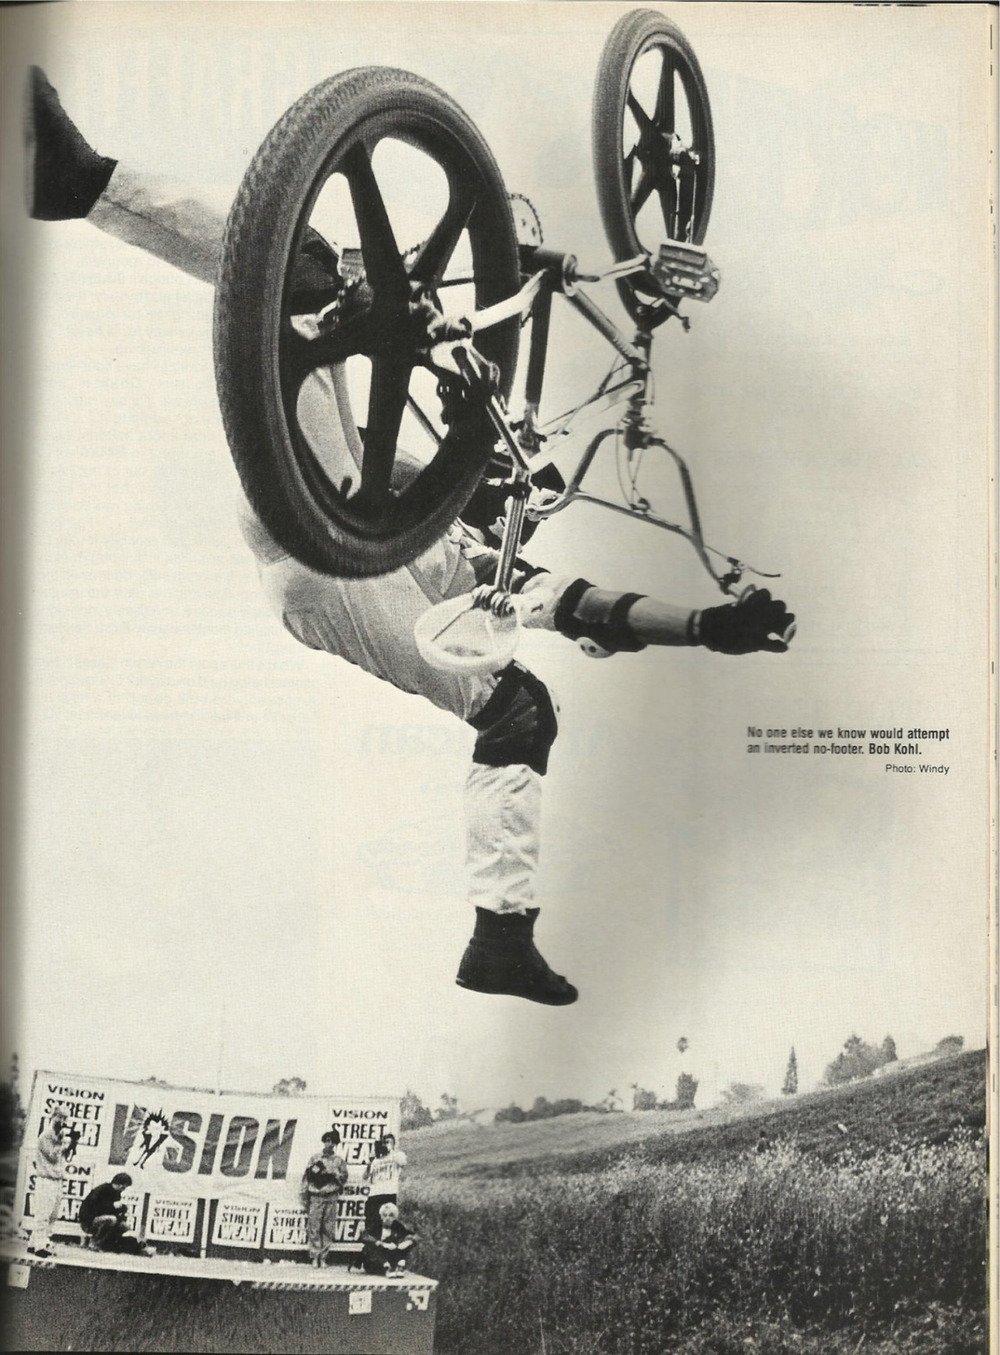 Not sure how this works but someone needs to bring them back! No footed invert by Bob Kohl many moons ago.